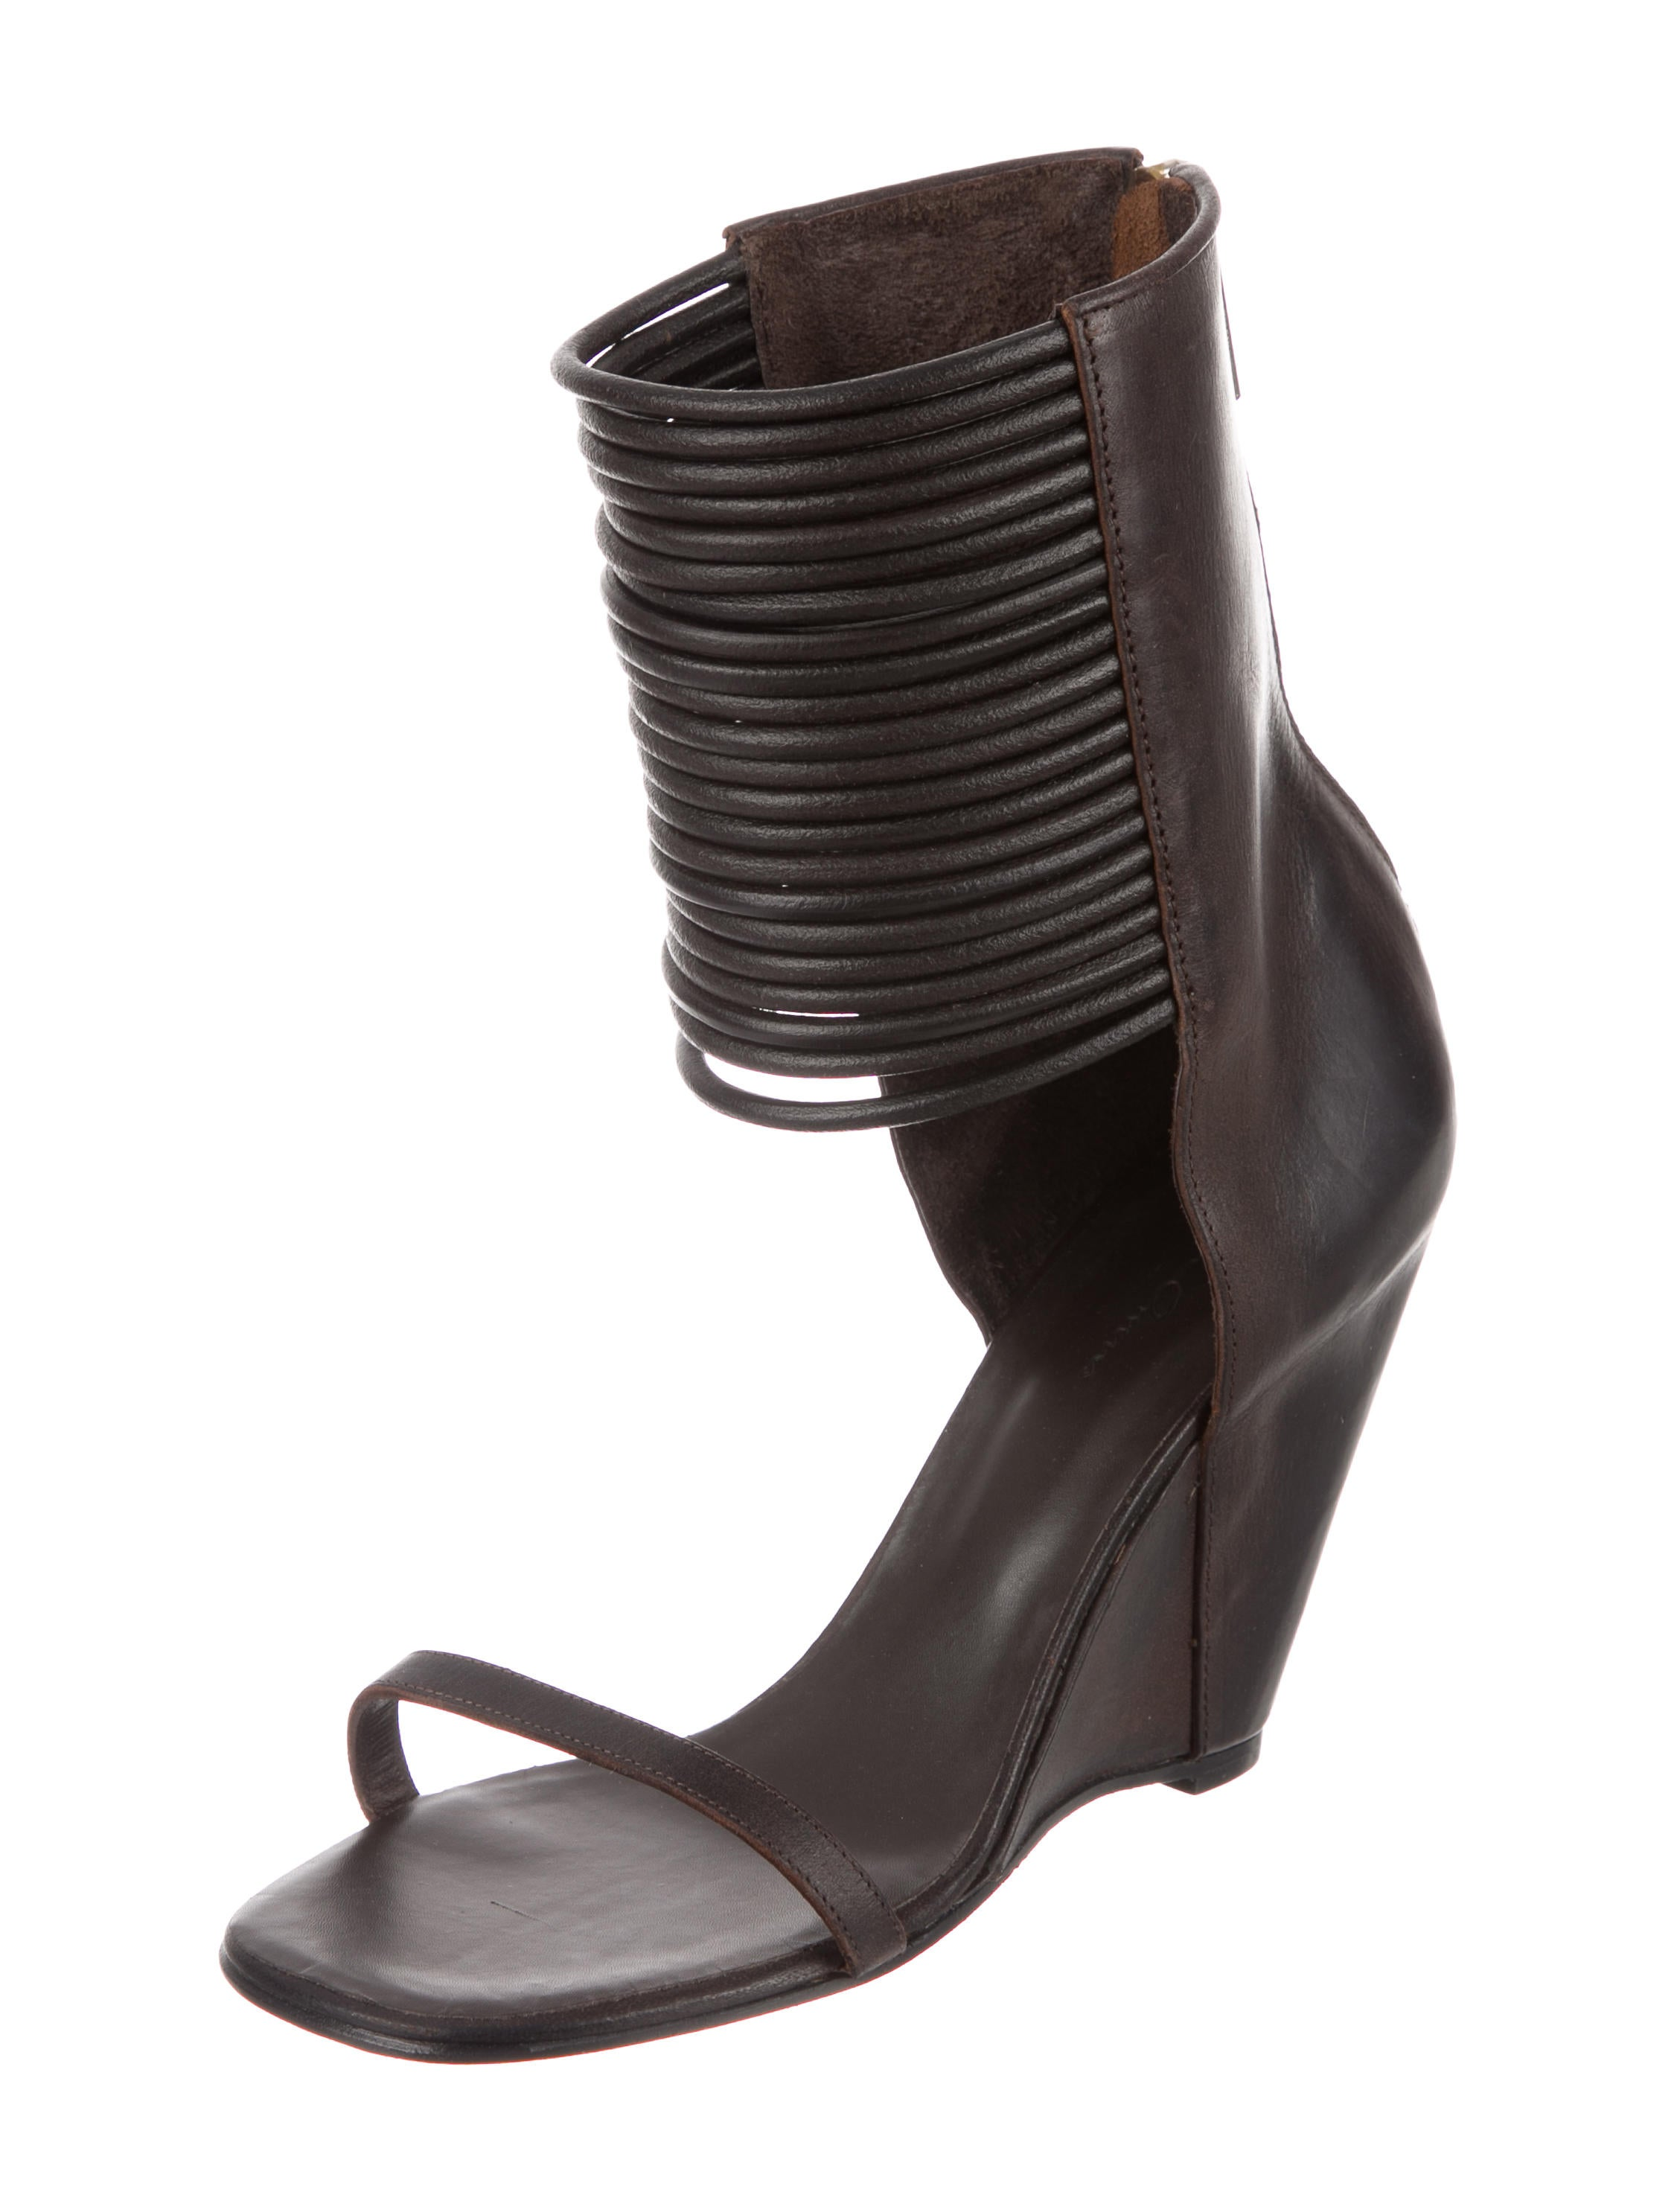 Rick Owens Leather Wedge Sandals w/ Tags pay with paypal hiWsl